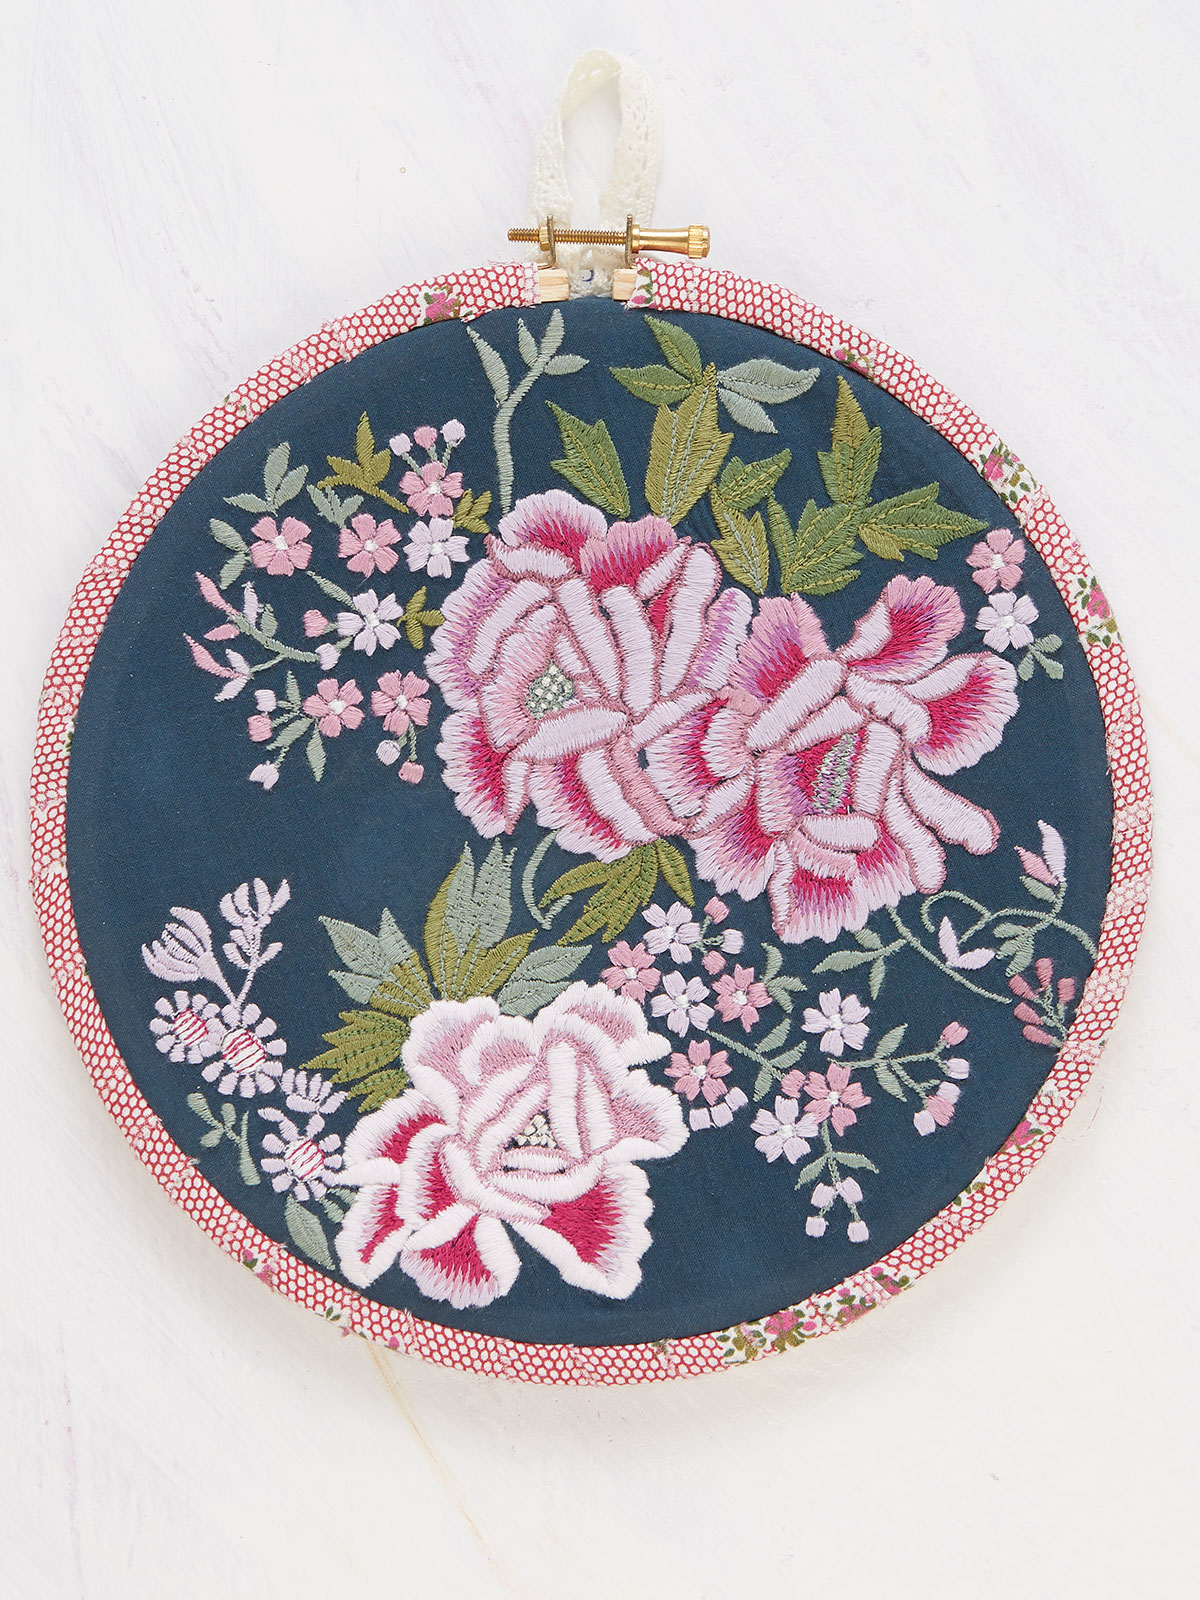 Charity Keepsake Embroidery